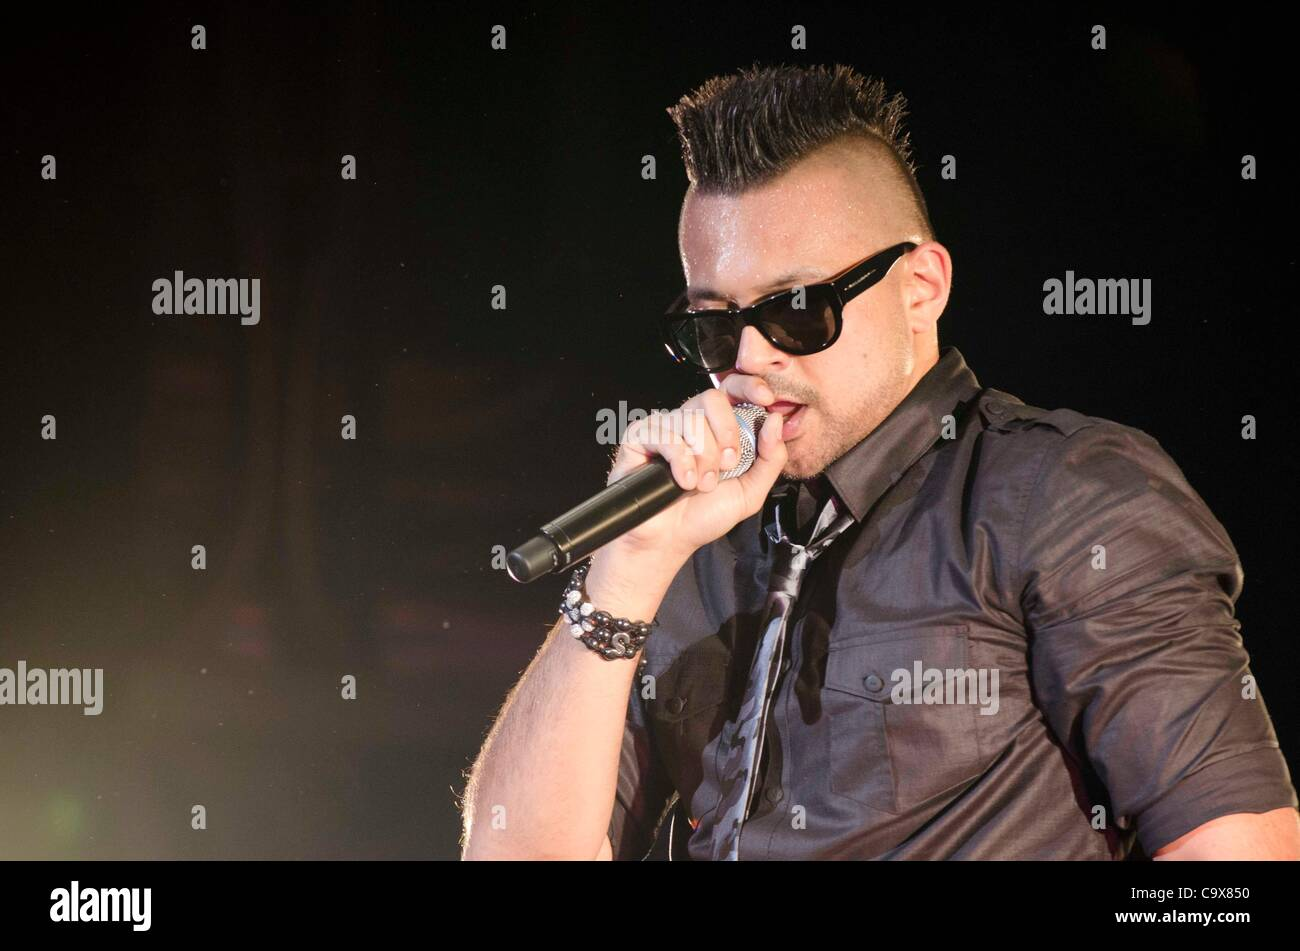 February 28th, 2012 : Tokyo, Japan – Sean Paul appears at